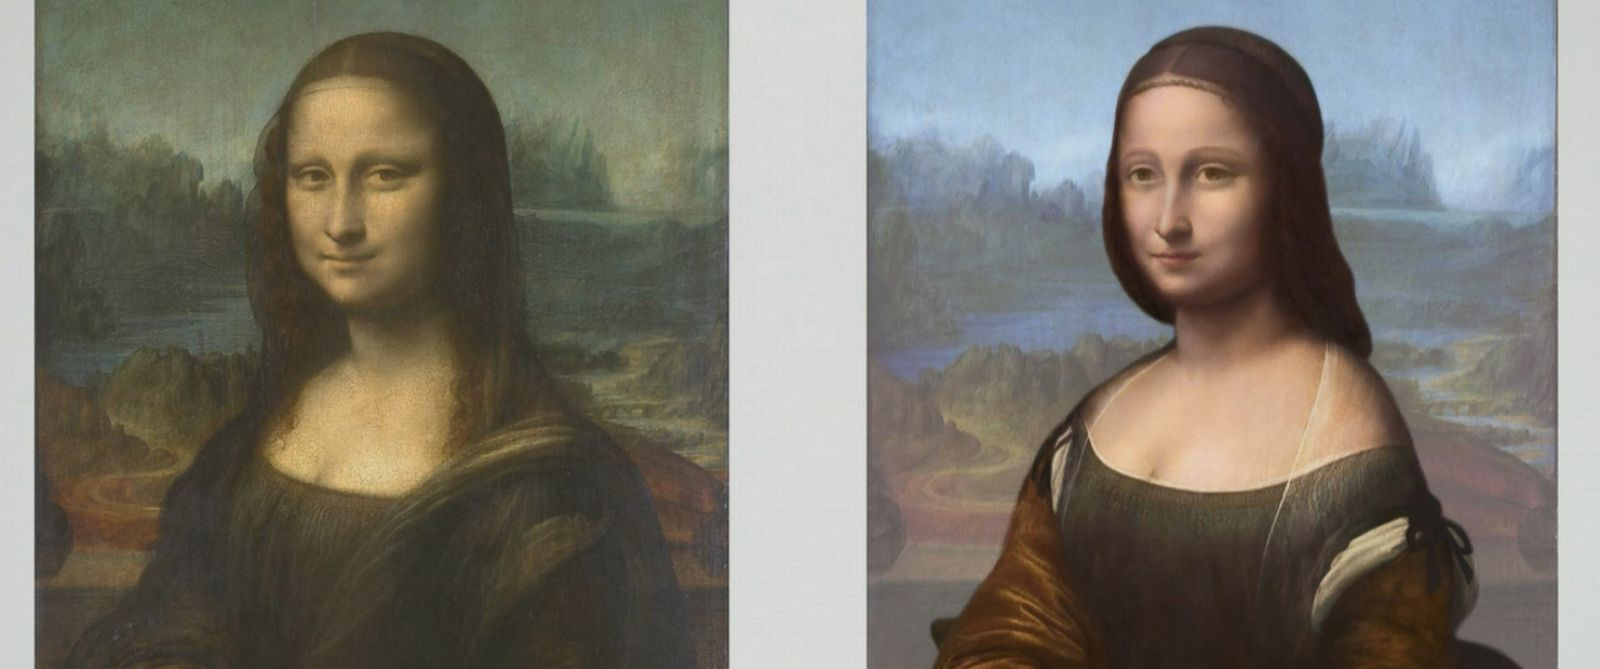 PHOTO: The Mona Lisa, left, and the hidden portrait which Pascal Cotte claims to have found.